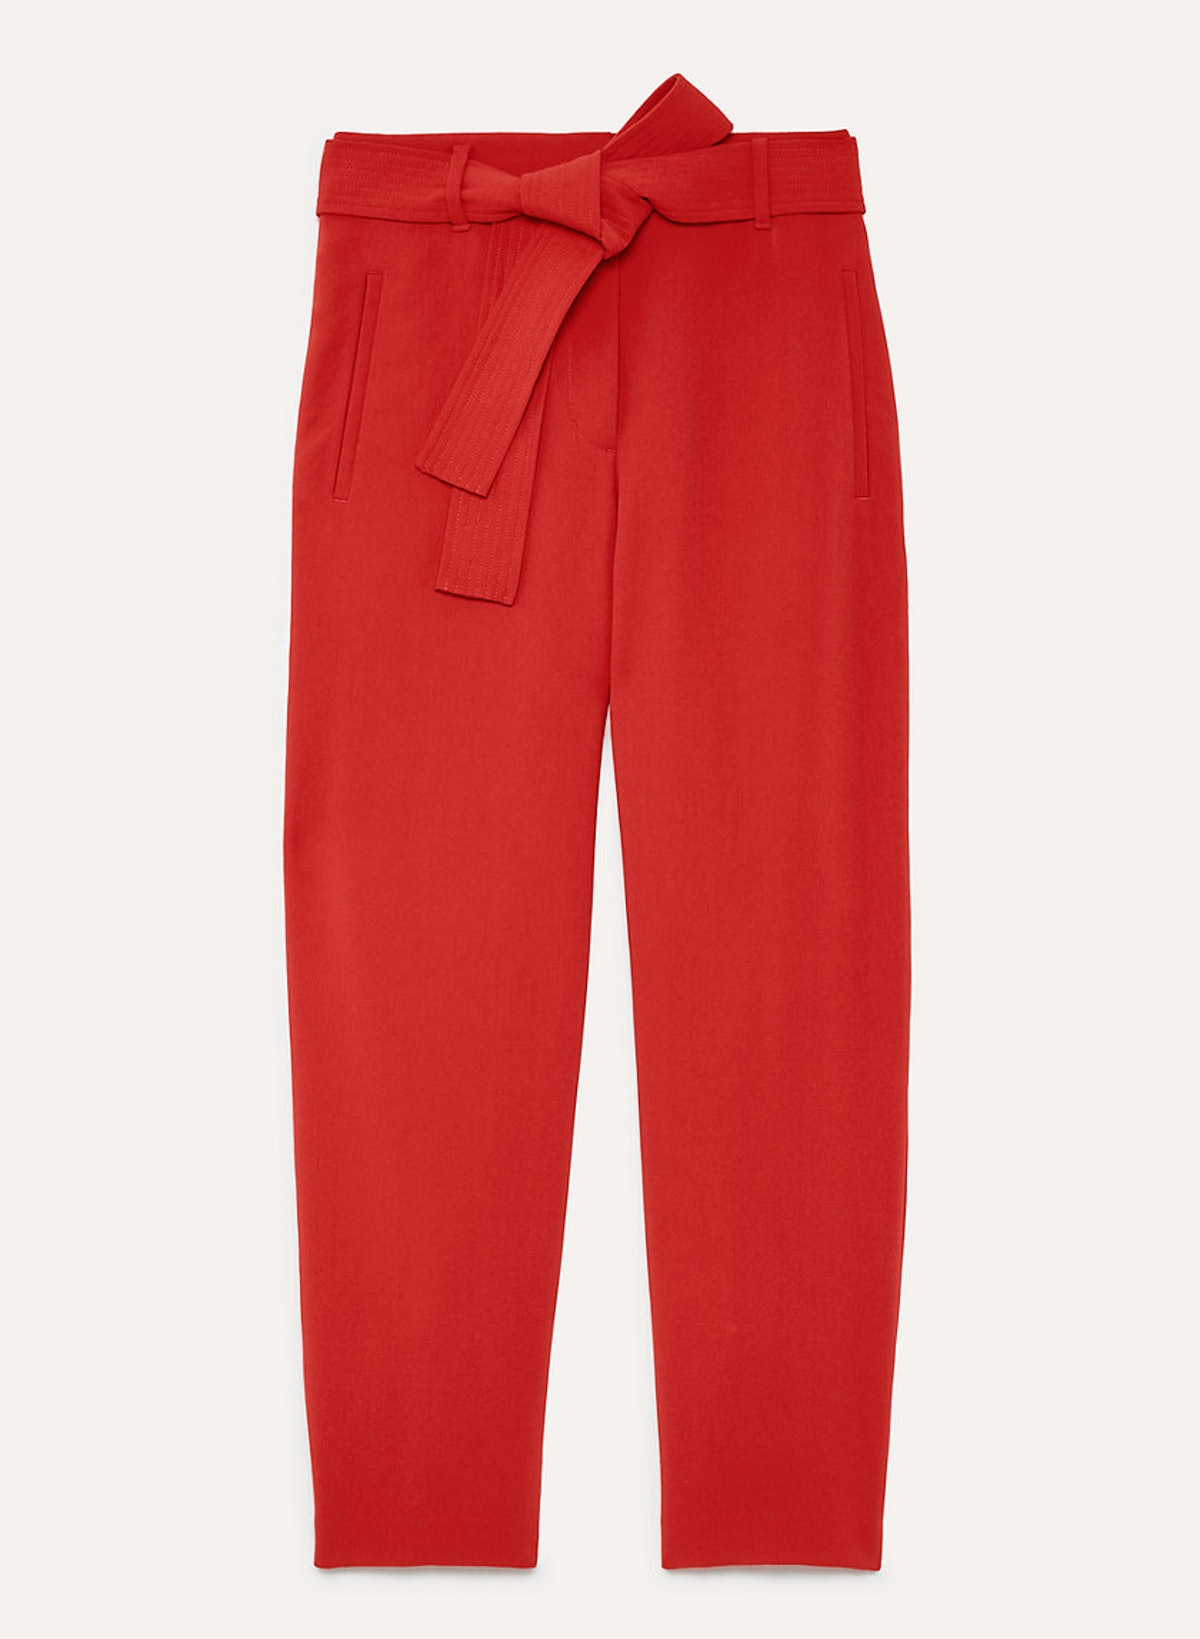 Wilfred Jallade Pant Crepe Cropped, High-Waisted Pant